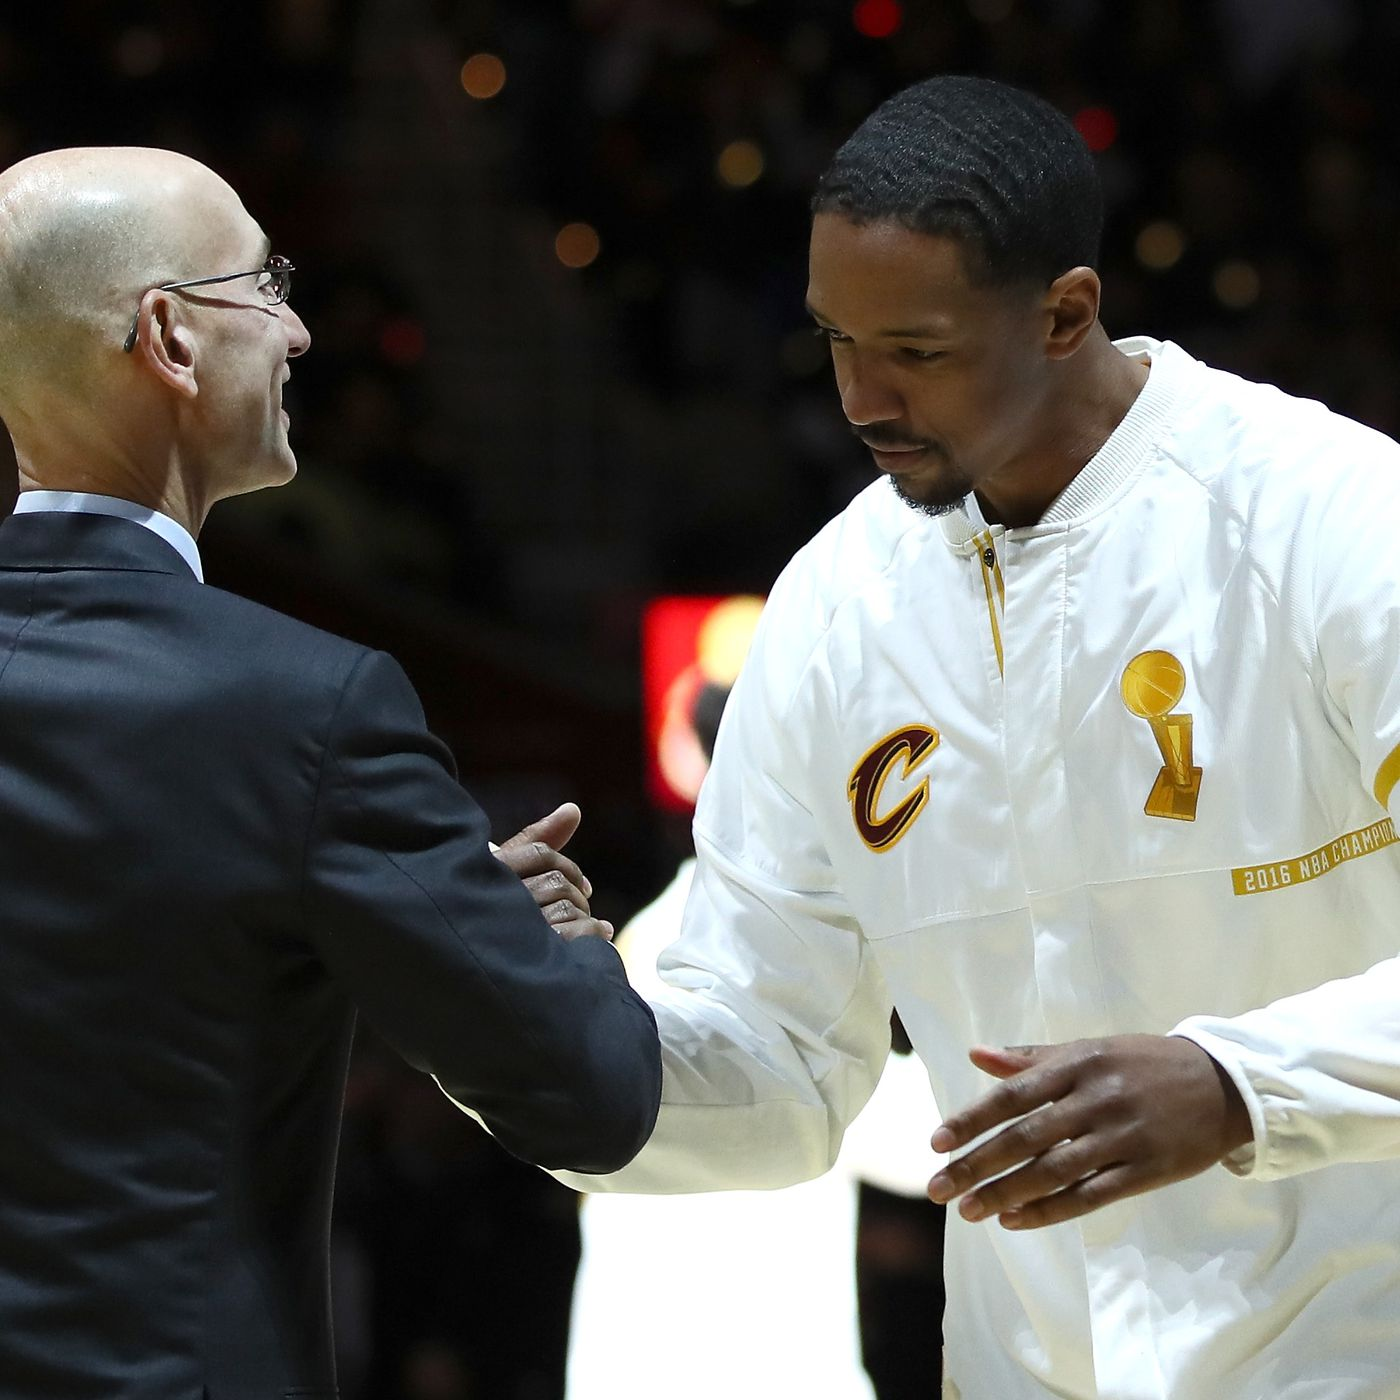 b2d2be3e52c Channing Frye will sign one-year deal with the Cleveland Cavaliers ...